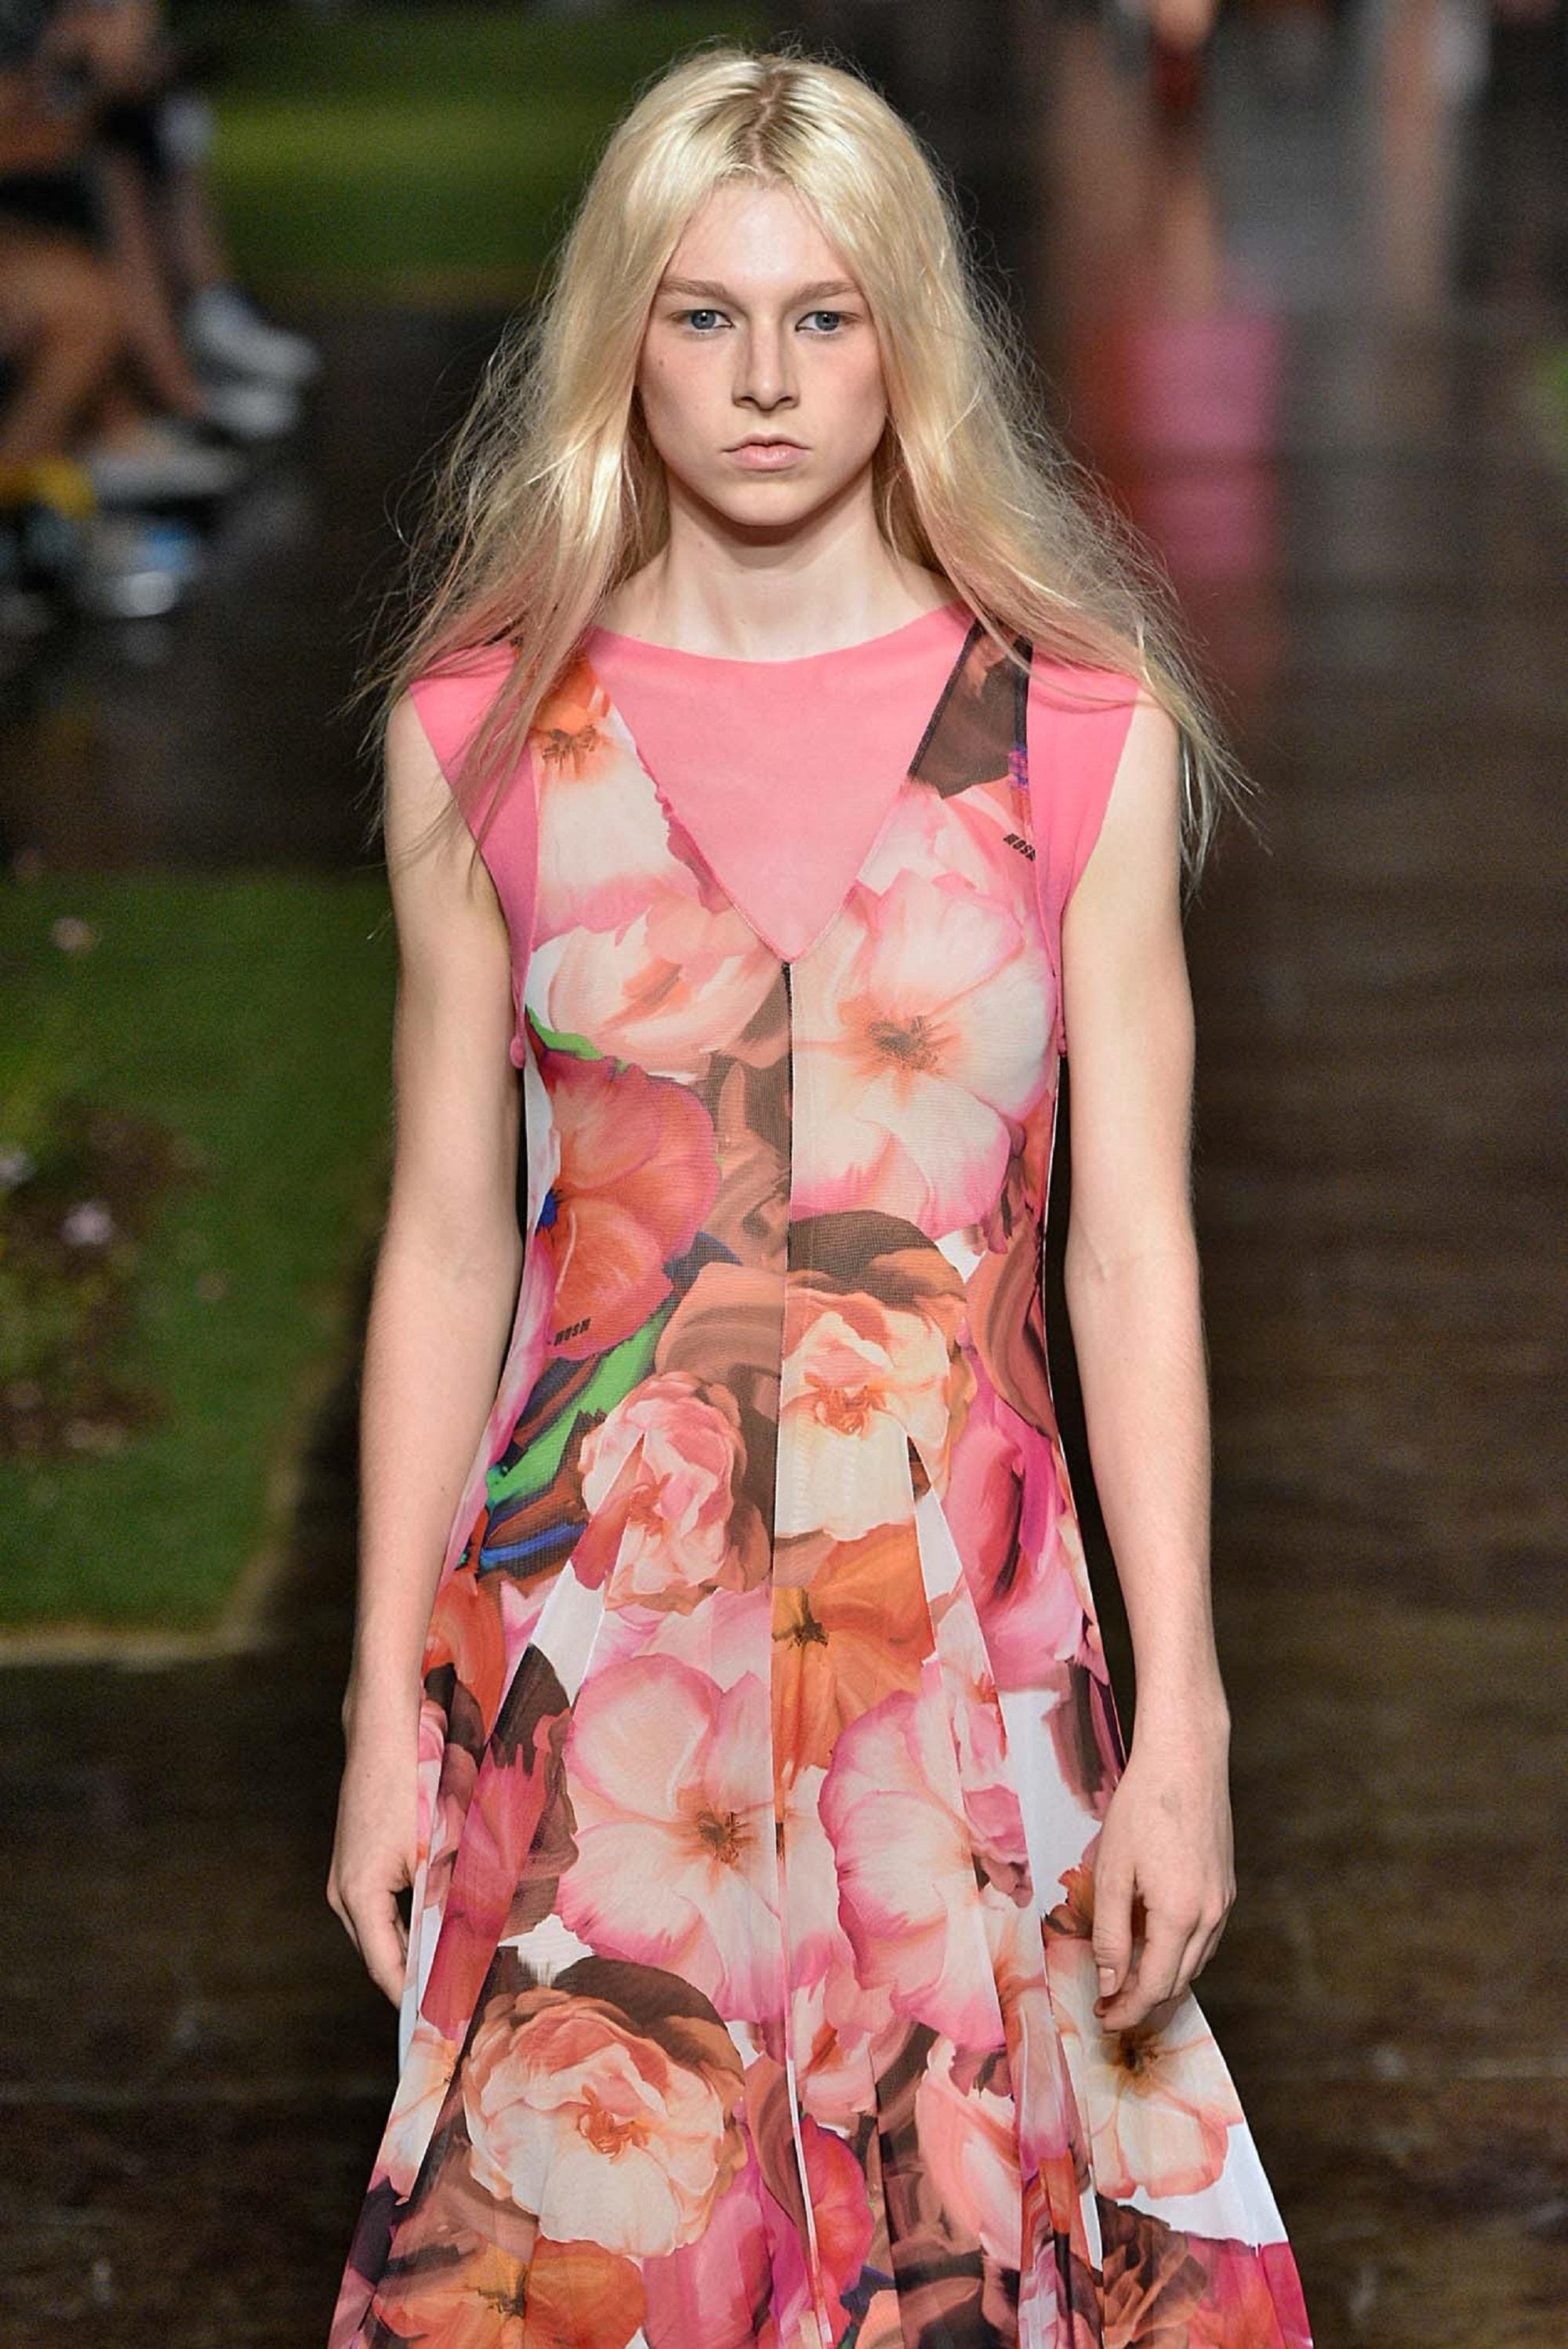 Light blonde hair: White model wearing a printed dress with long blonde hair walking on the runway